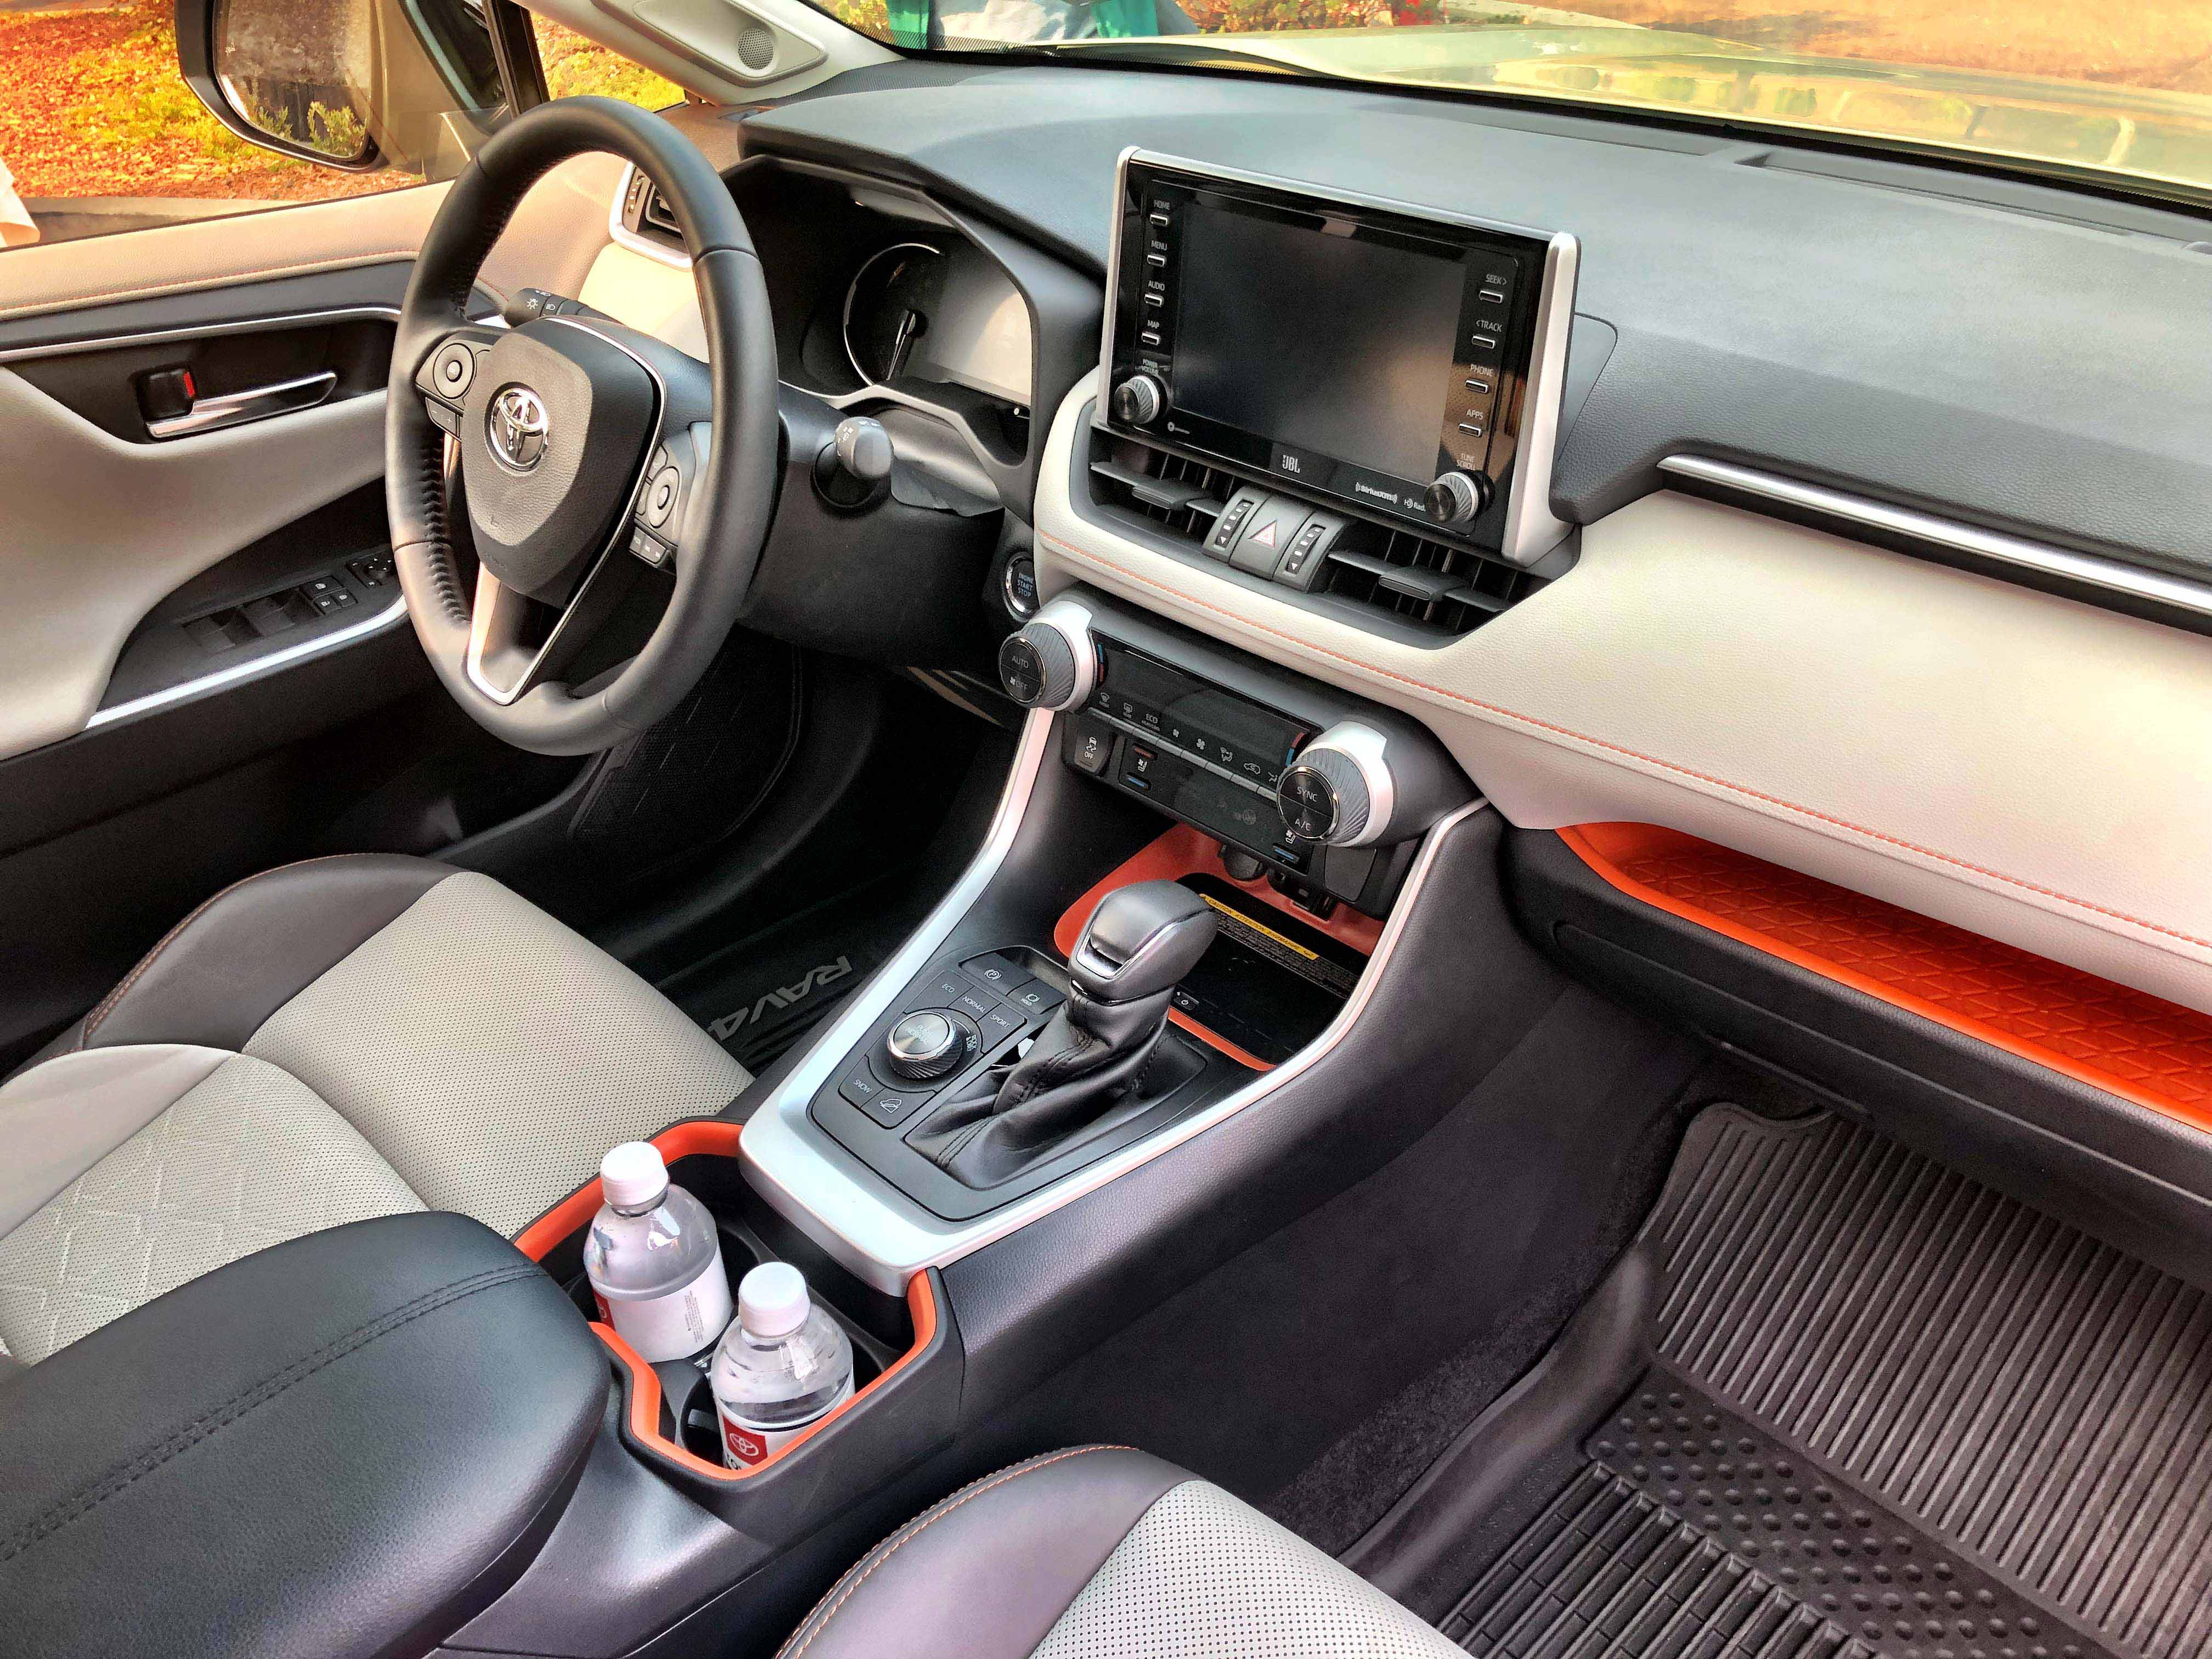 2019 Toyota Rav4 The Adventuring Family Ride Automotive Rhythms Digital Radar Speedometer Other Firsts Include Dual Chrome Exhaust Tips Available Rear Seat Vents And Optional View Mirror Which I First Experienced On A Cadillac